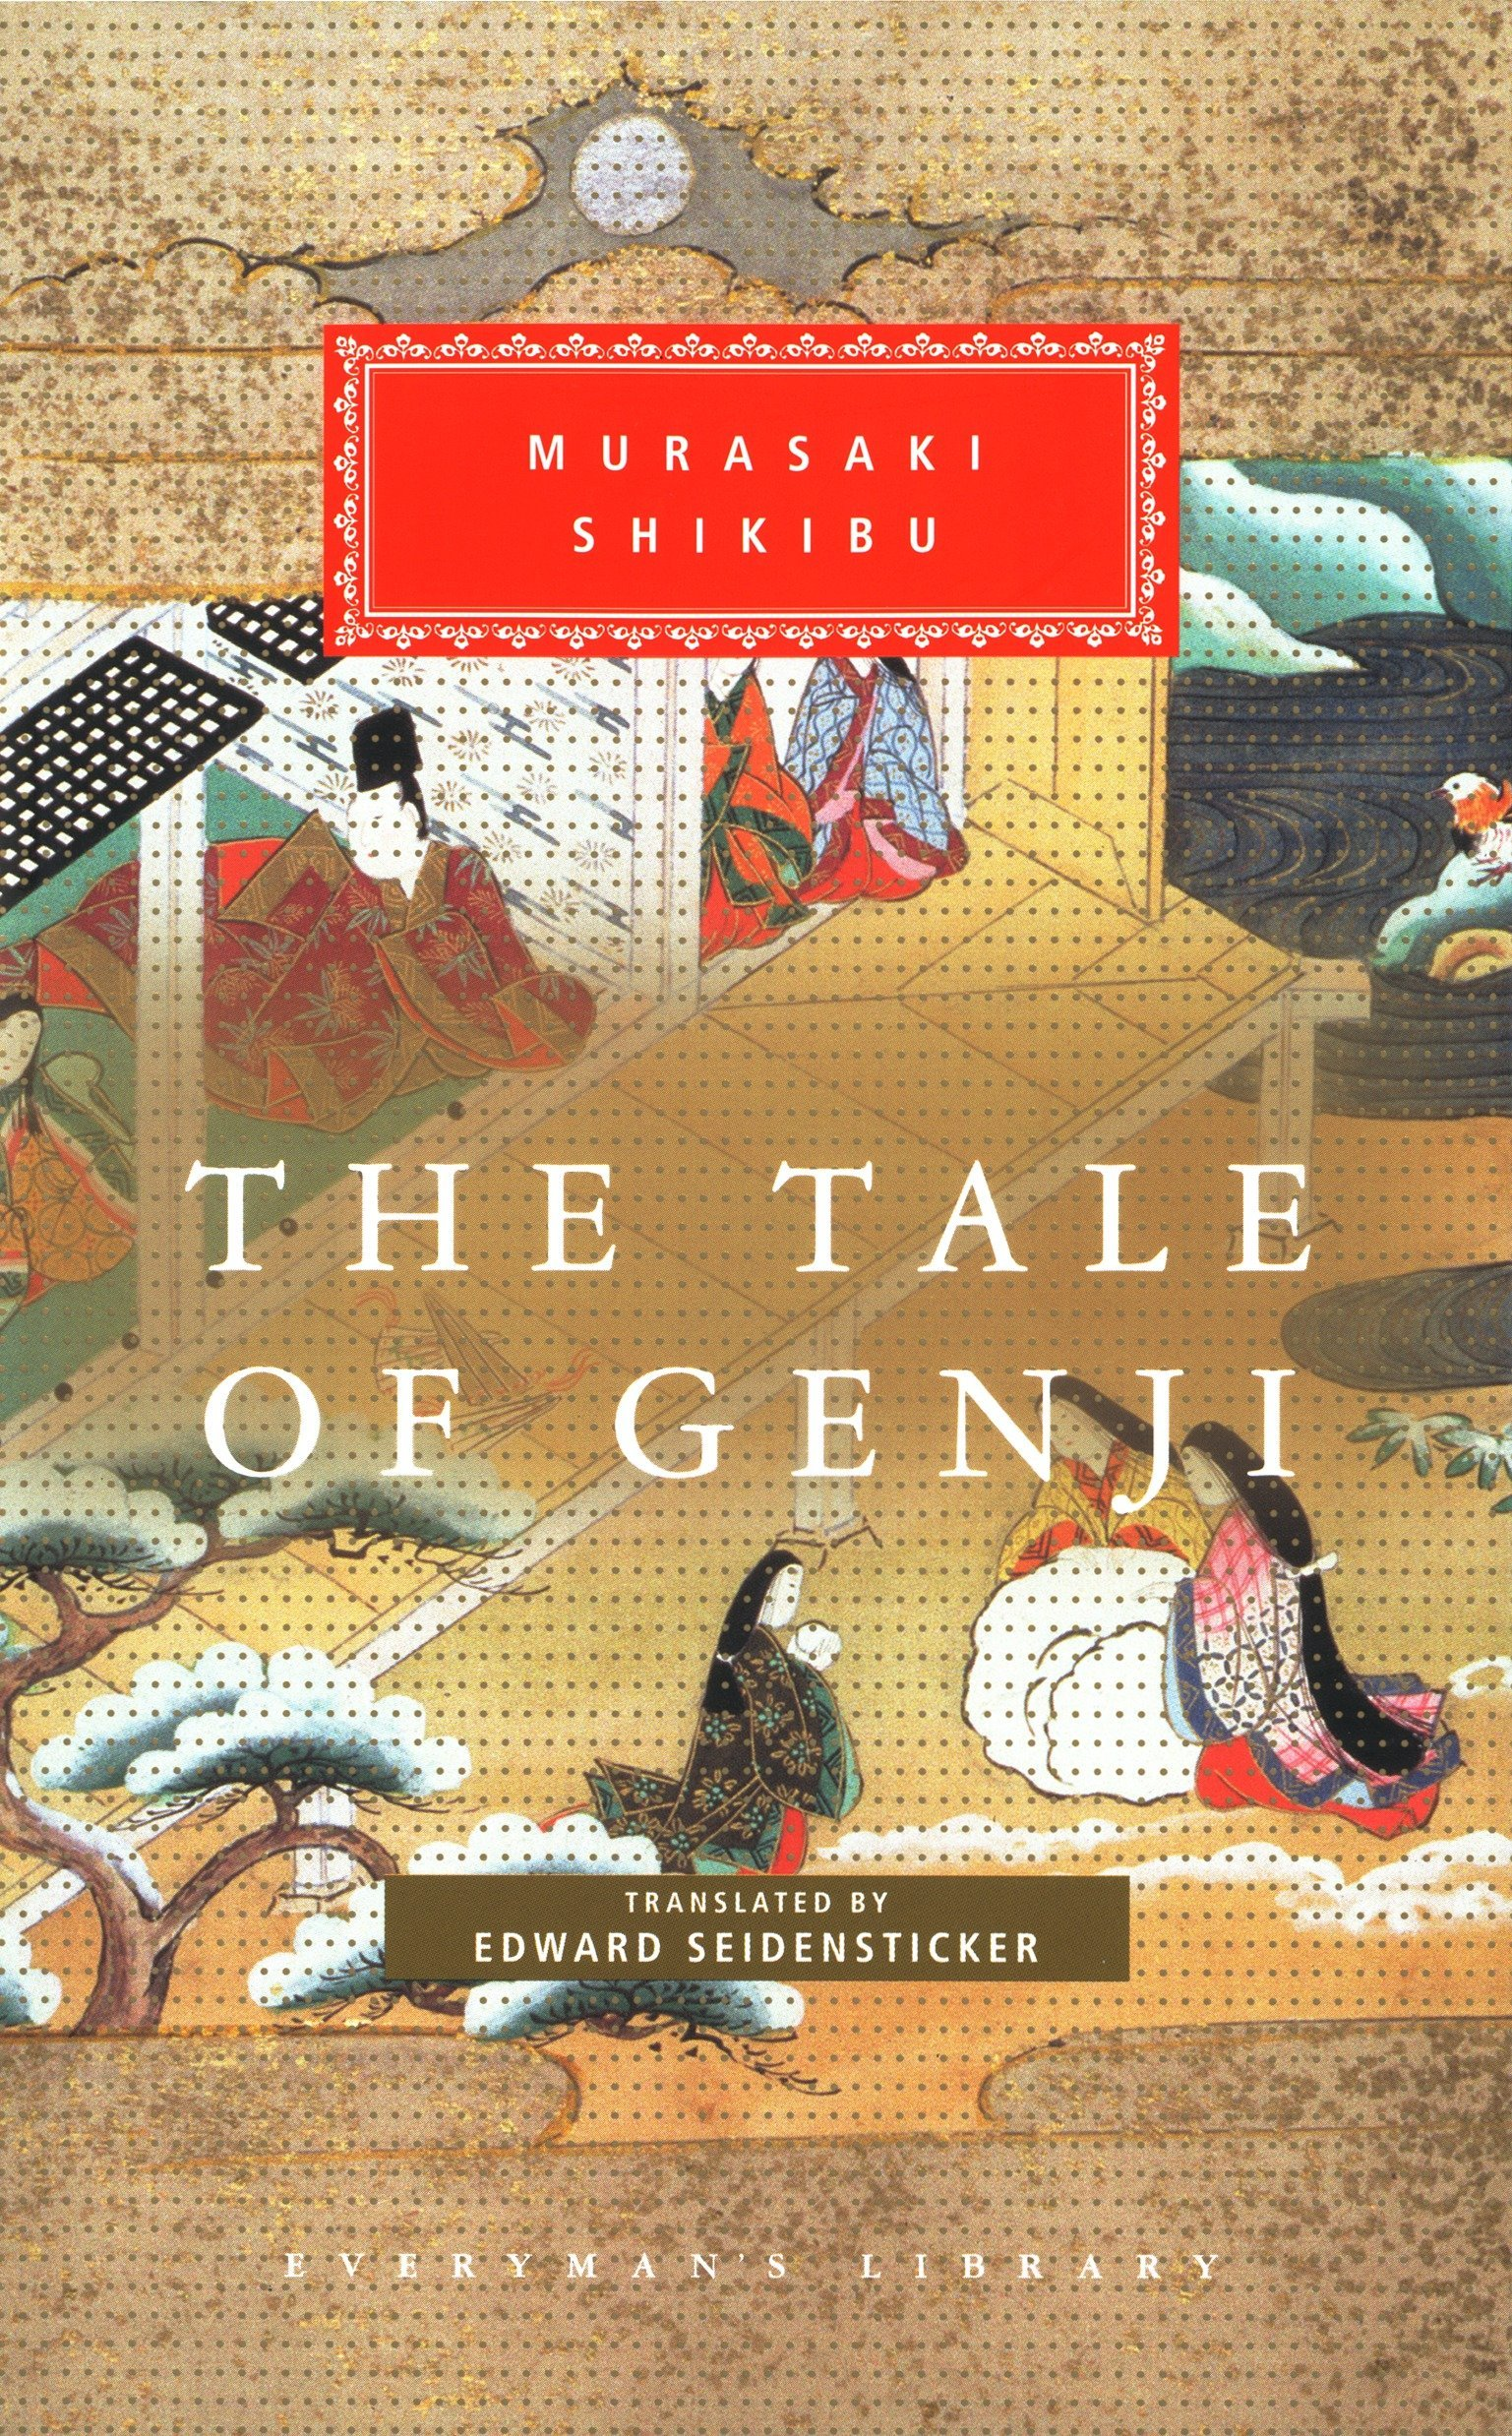 Sueño Humano Inconveniencia  The Tale of Genji: Amazon.it: Murasaki Shikibu, Seidensticker, Edward G.:  Libri in altre lingue